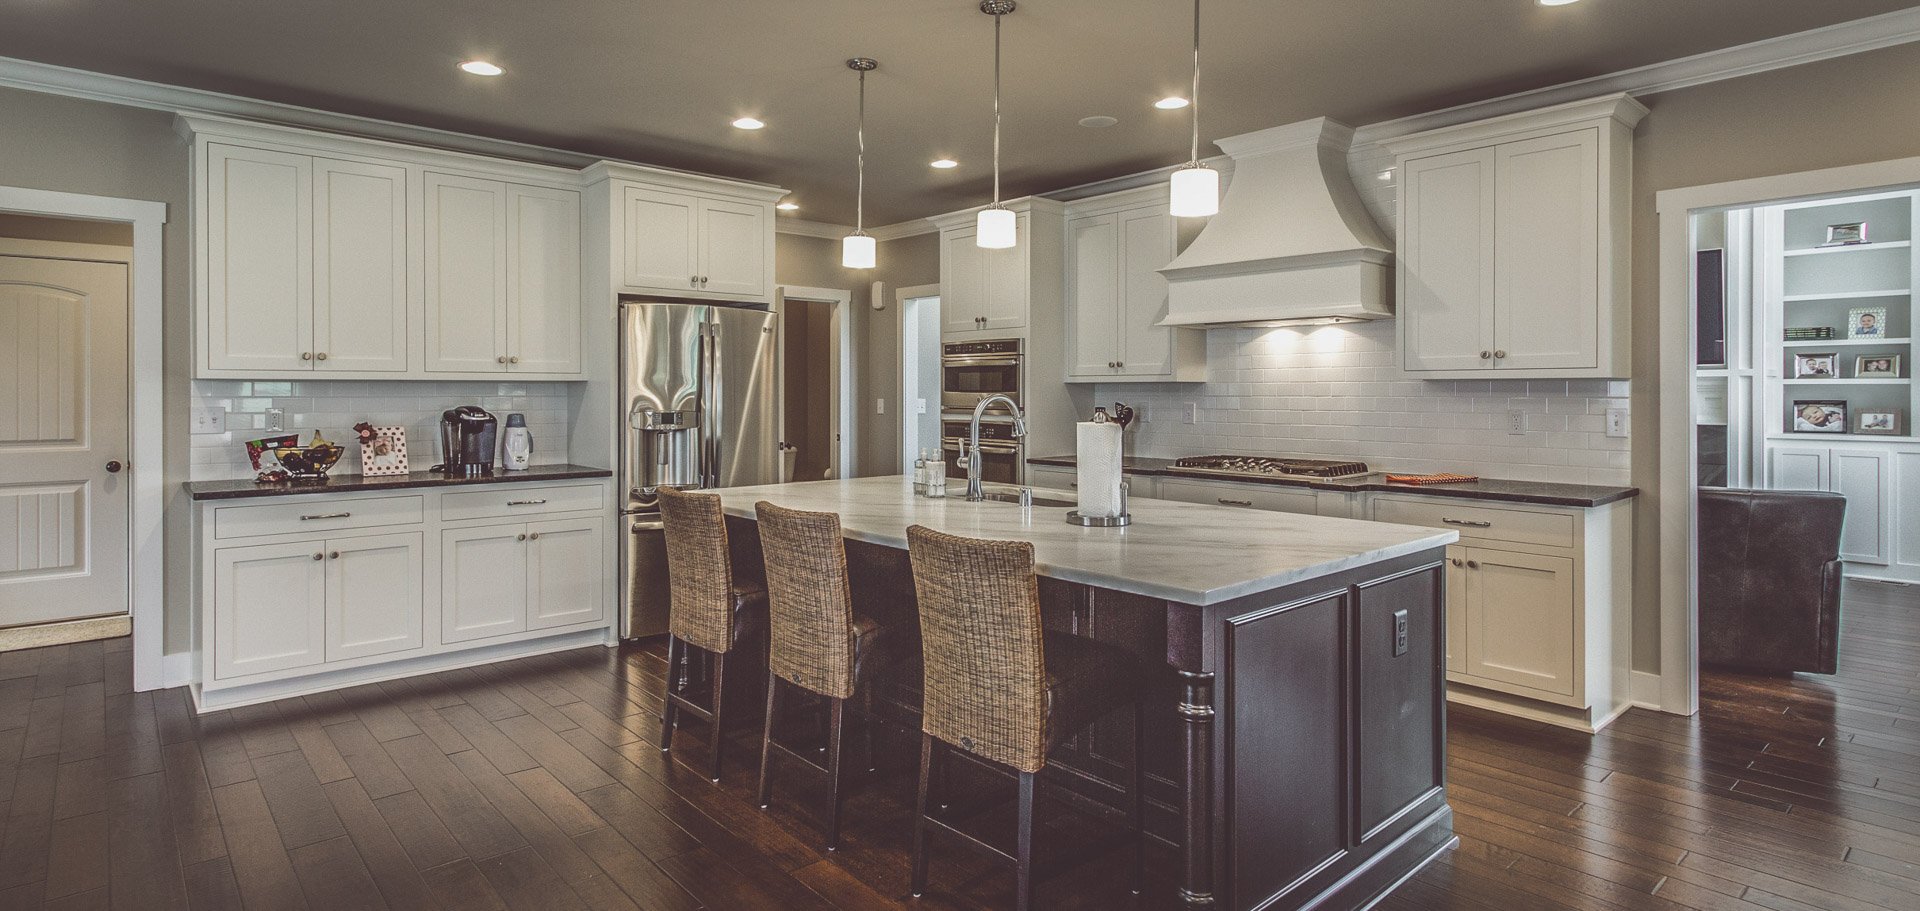 Custom Home Builder located in Louisville KY, Bentley Homes and Construction.